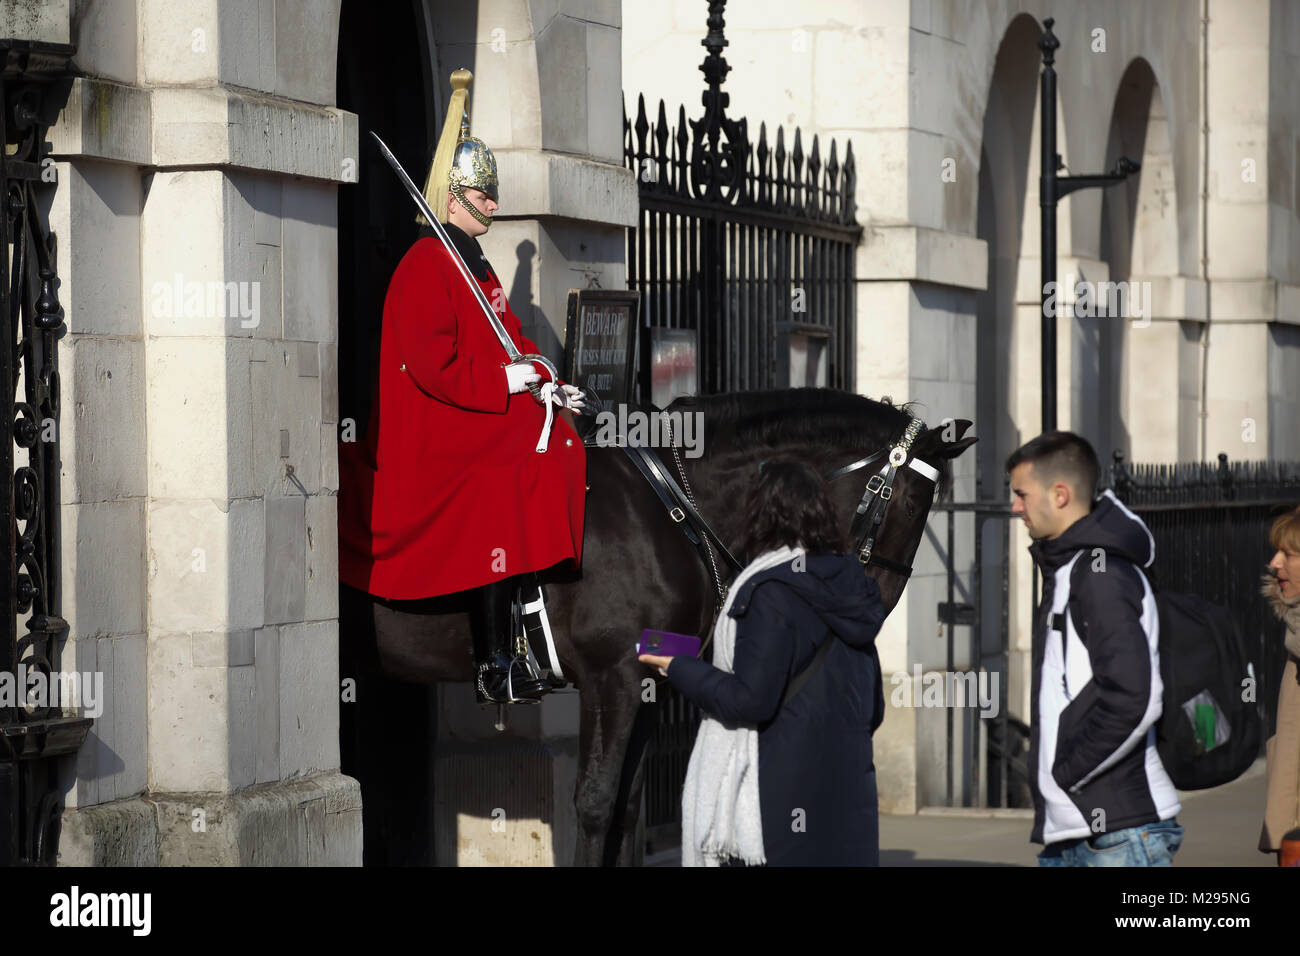 London, UK. 6th Feb, 2018. UK Weather. Chilly day Horseguards Parade in Central London. People wrap up warm as the Stock Photo